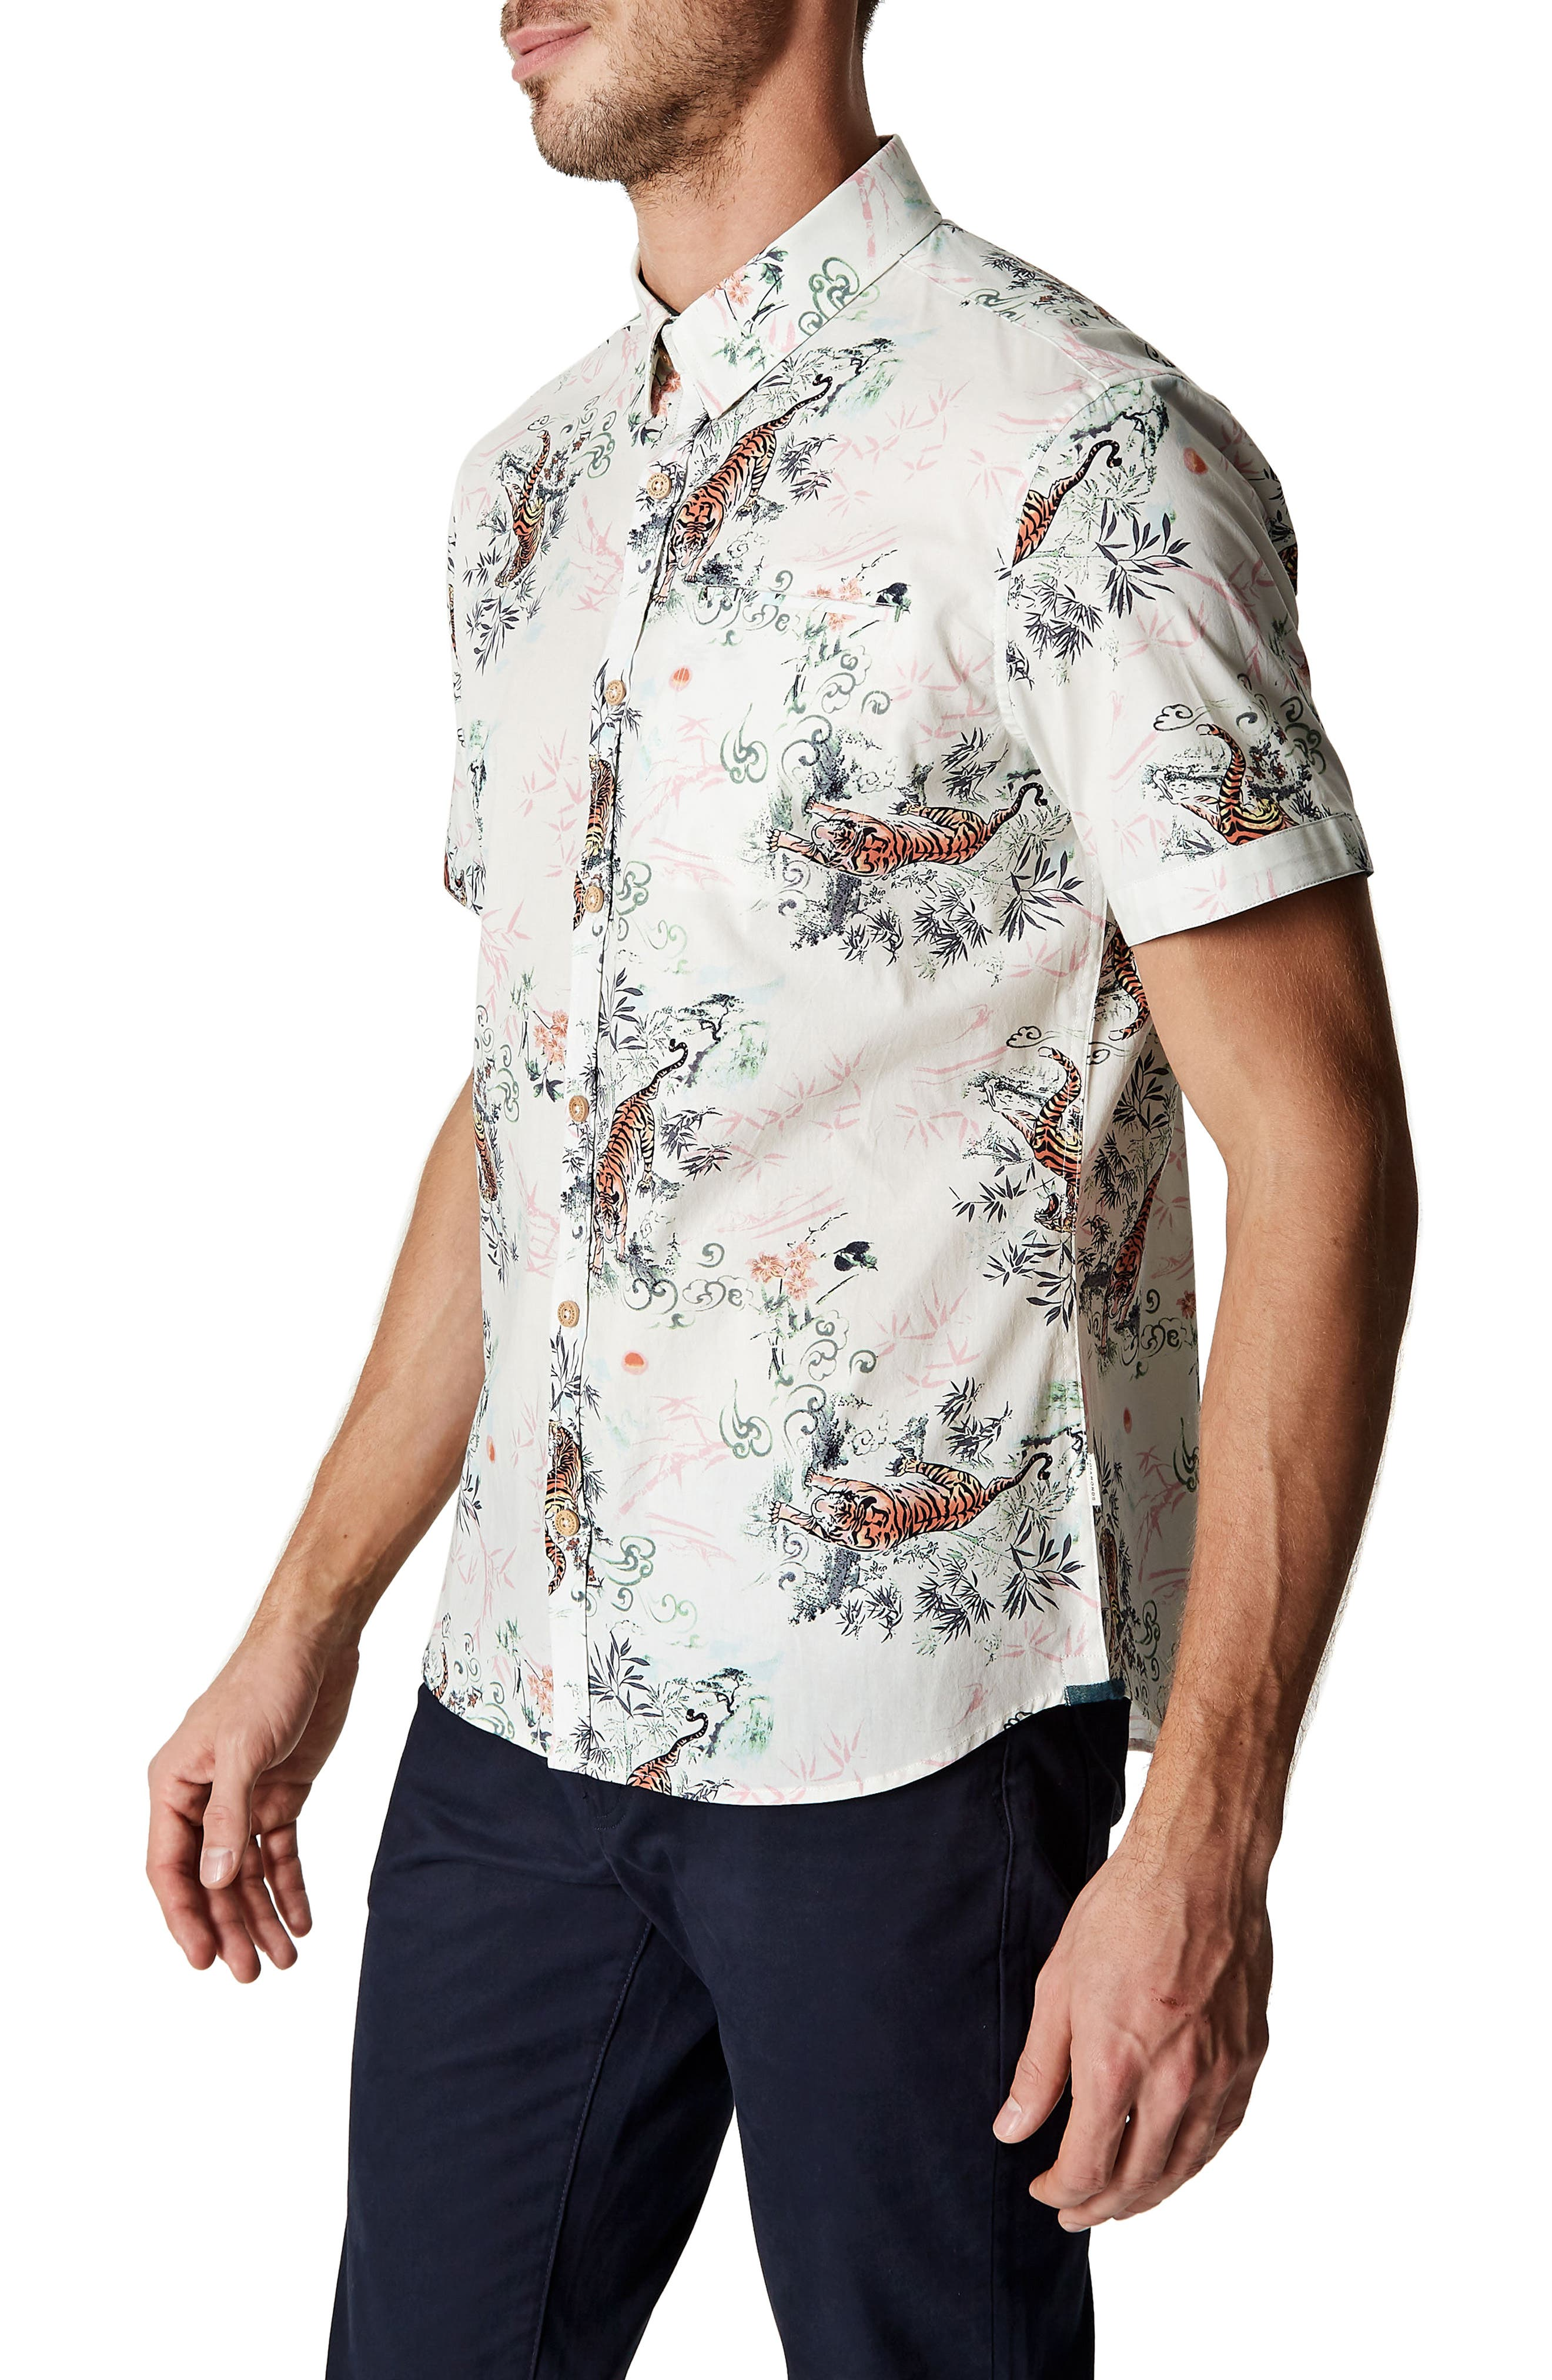 Wild Thoughts Tiger Print Woven Shirt,                             Alternate thumbnail 3, color,